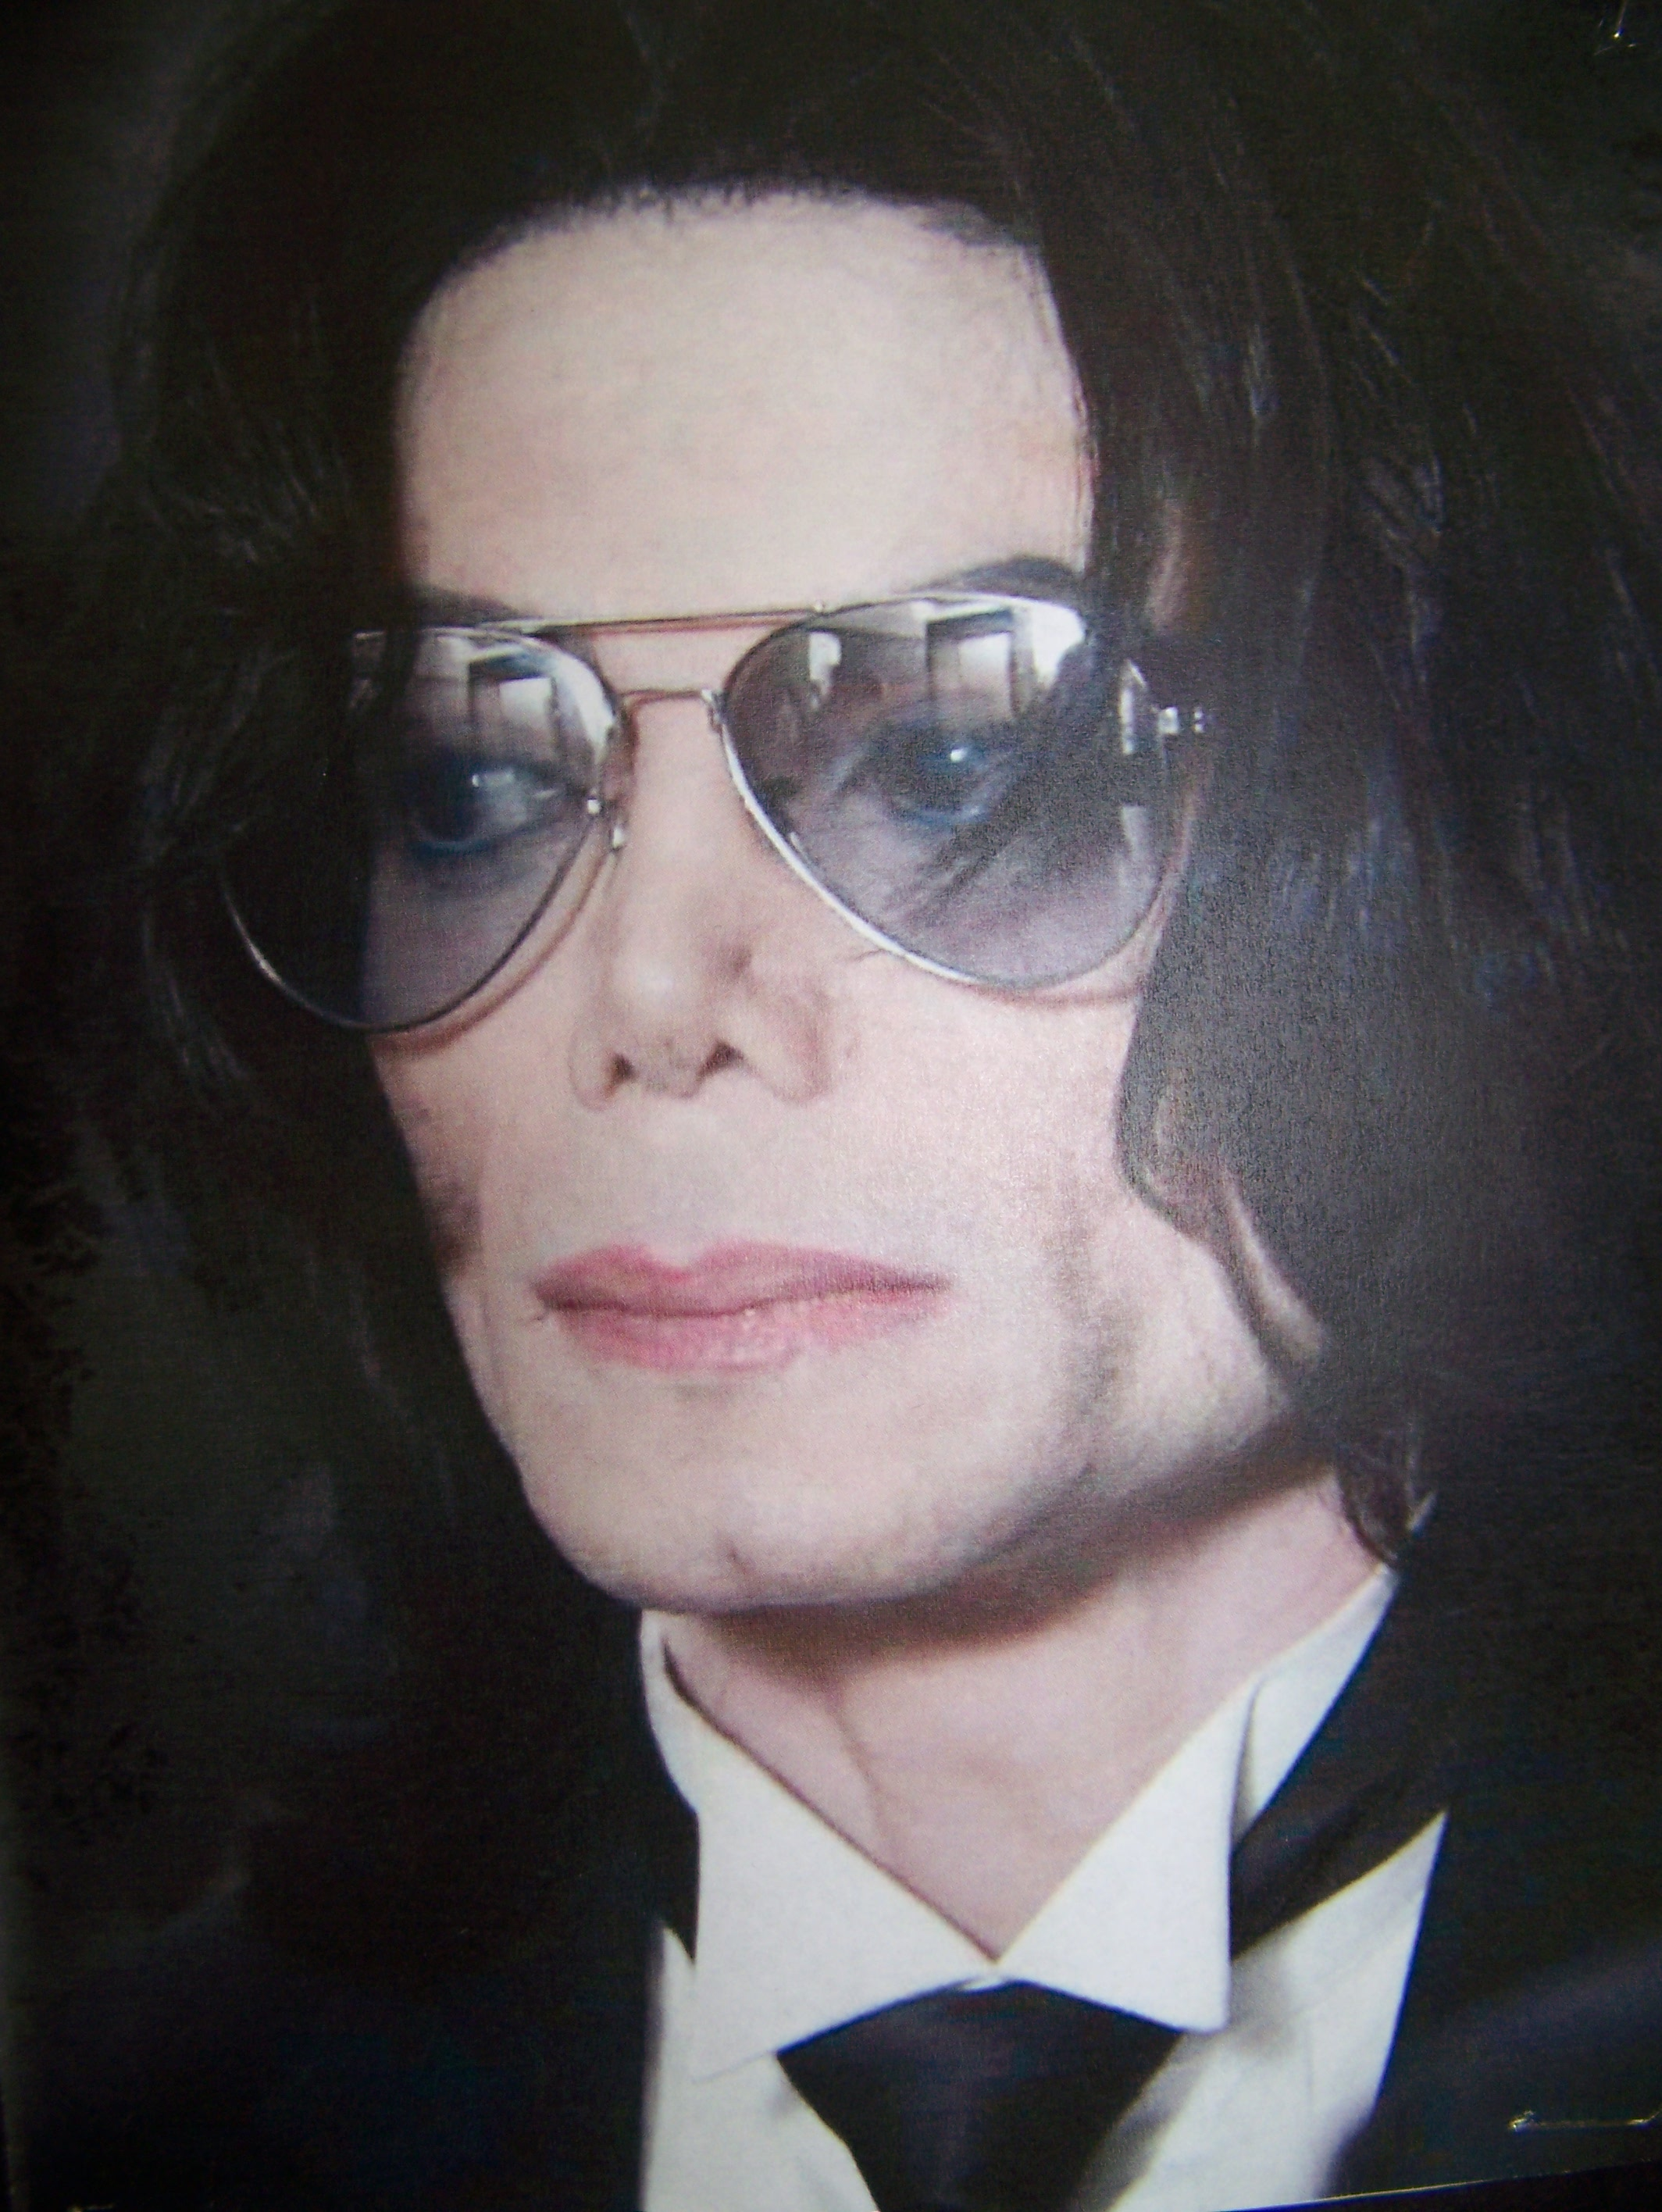 Michael Jackson photo later in life